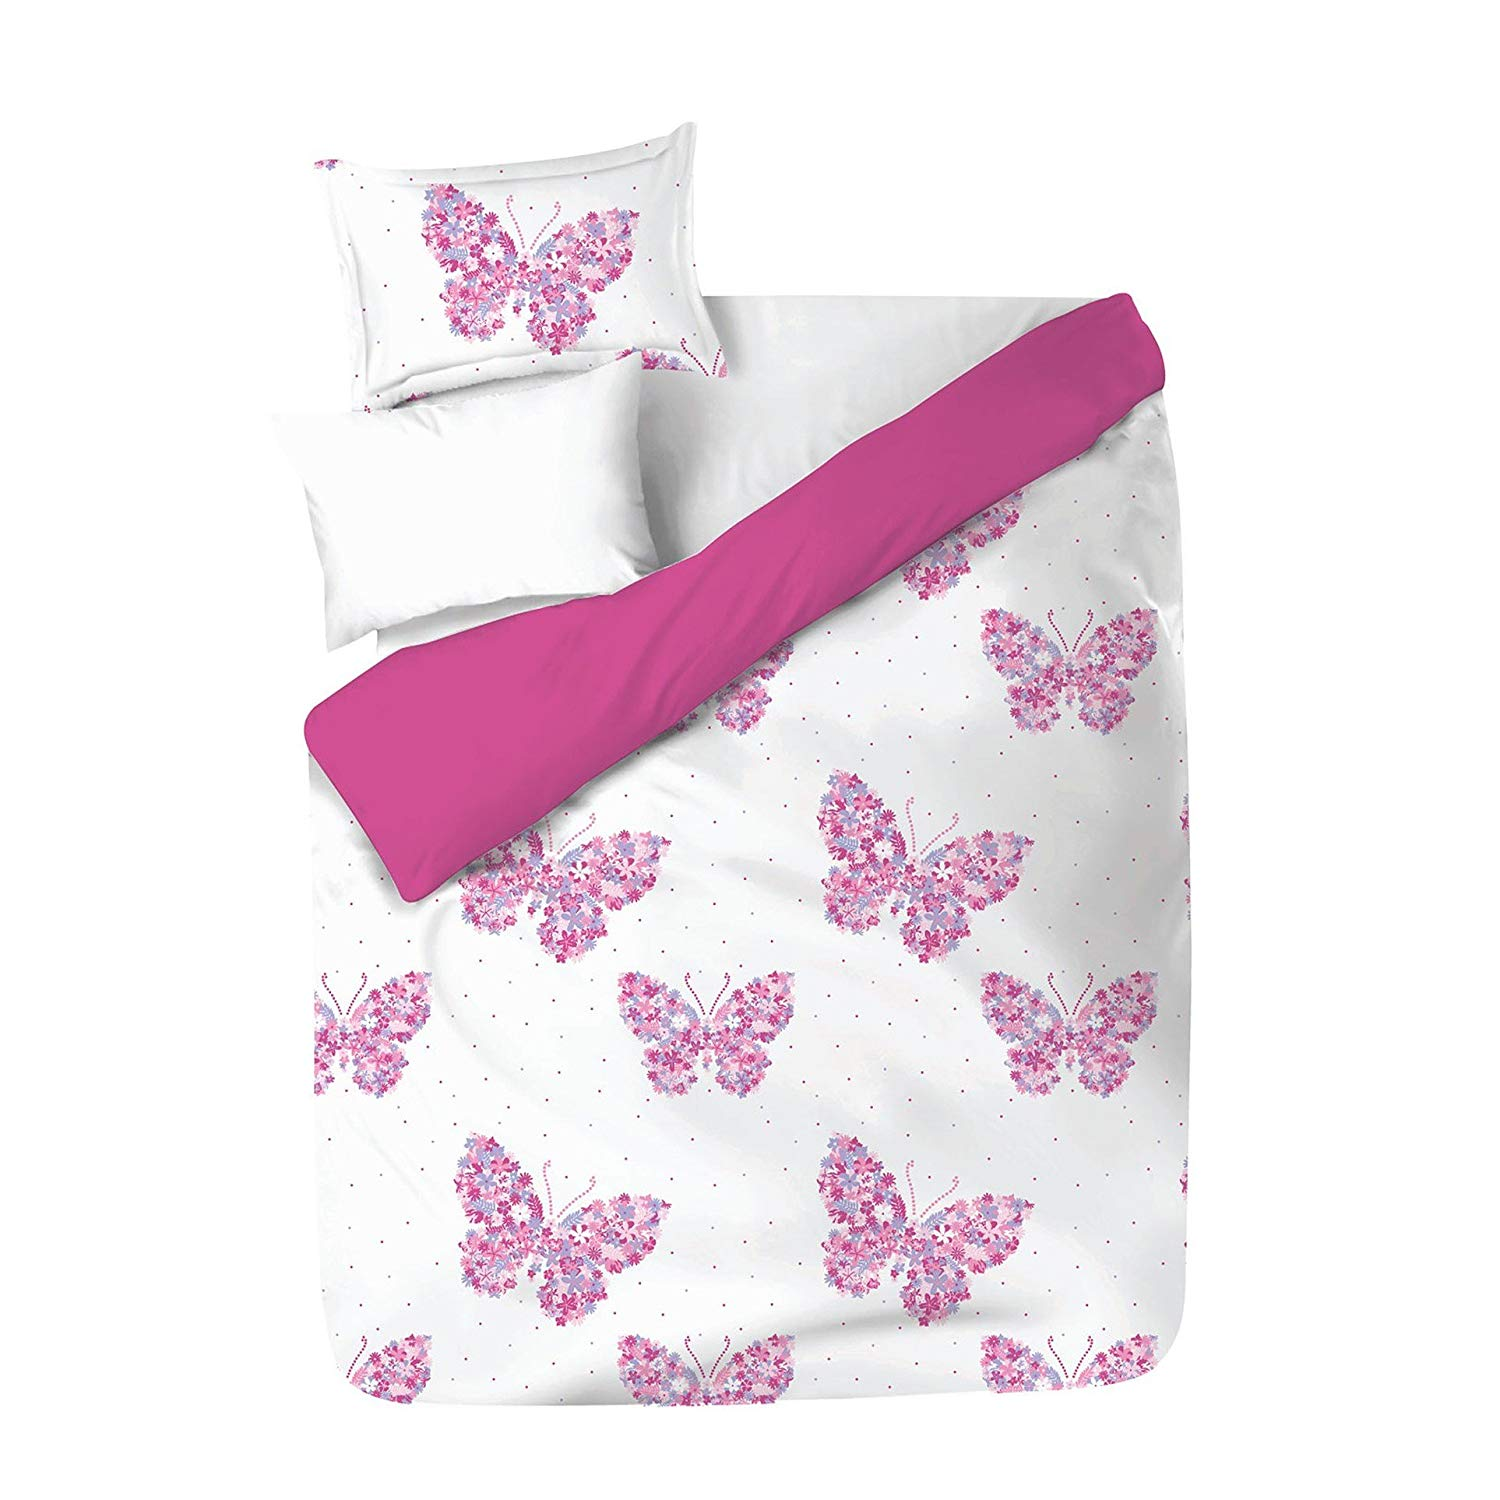 2 Piece Girls Pink Lilac Floral Butterfly Theme Comforter Twin Set, Beautiful Multi Tiny Flowers Decorated Butterflies Print, All Over Boho Chic Polka Dots Print, Vibrant Colors, Microfiber Polyester